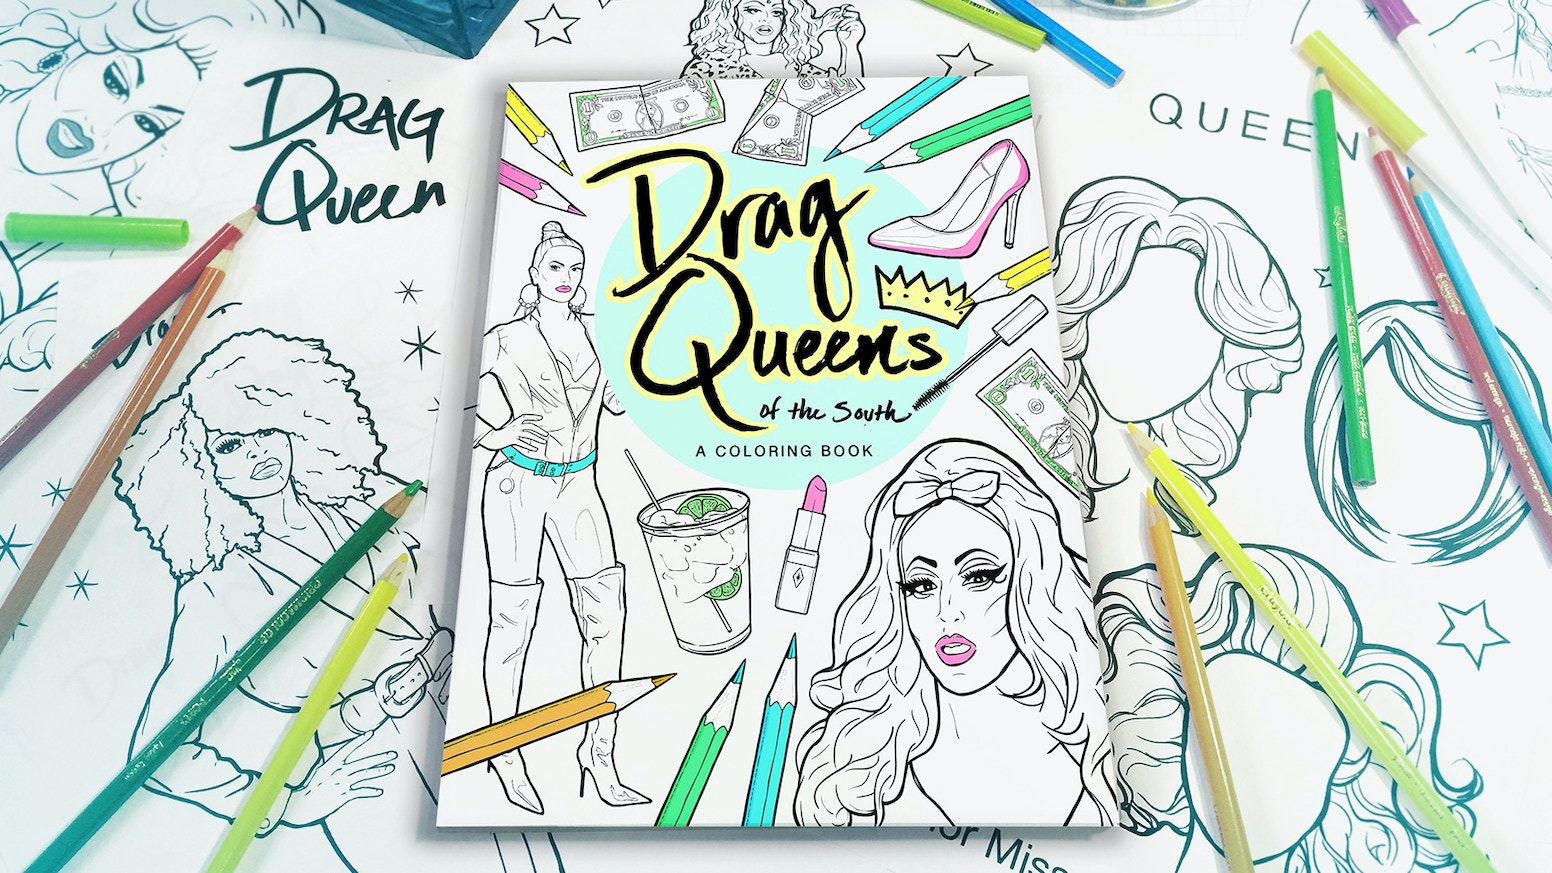 Coloring book html5 - Make 100 Drag Queens Of The South A Coloring Book